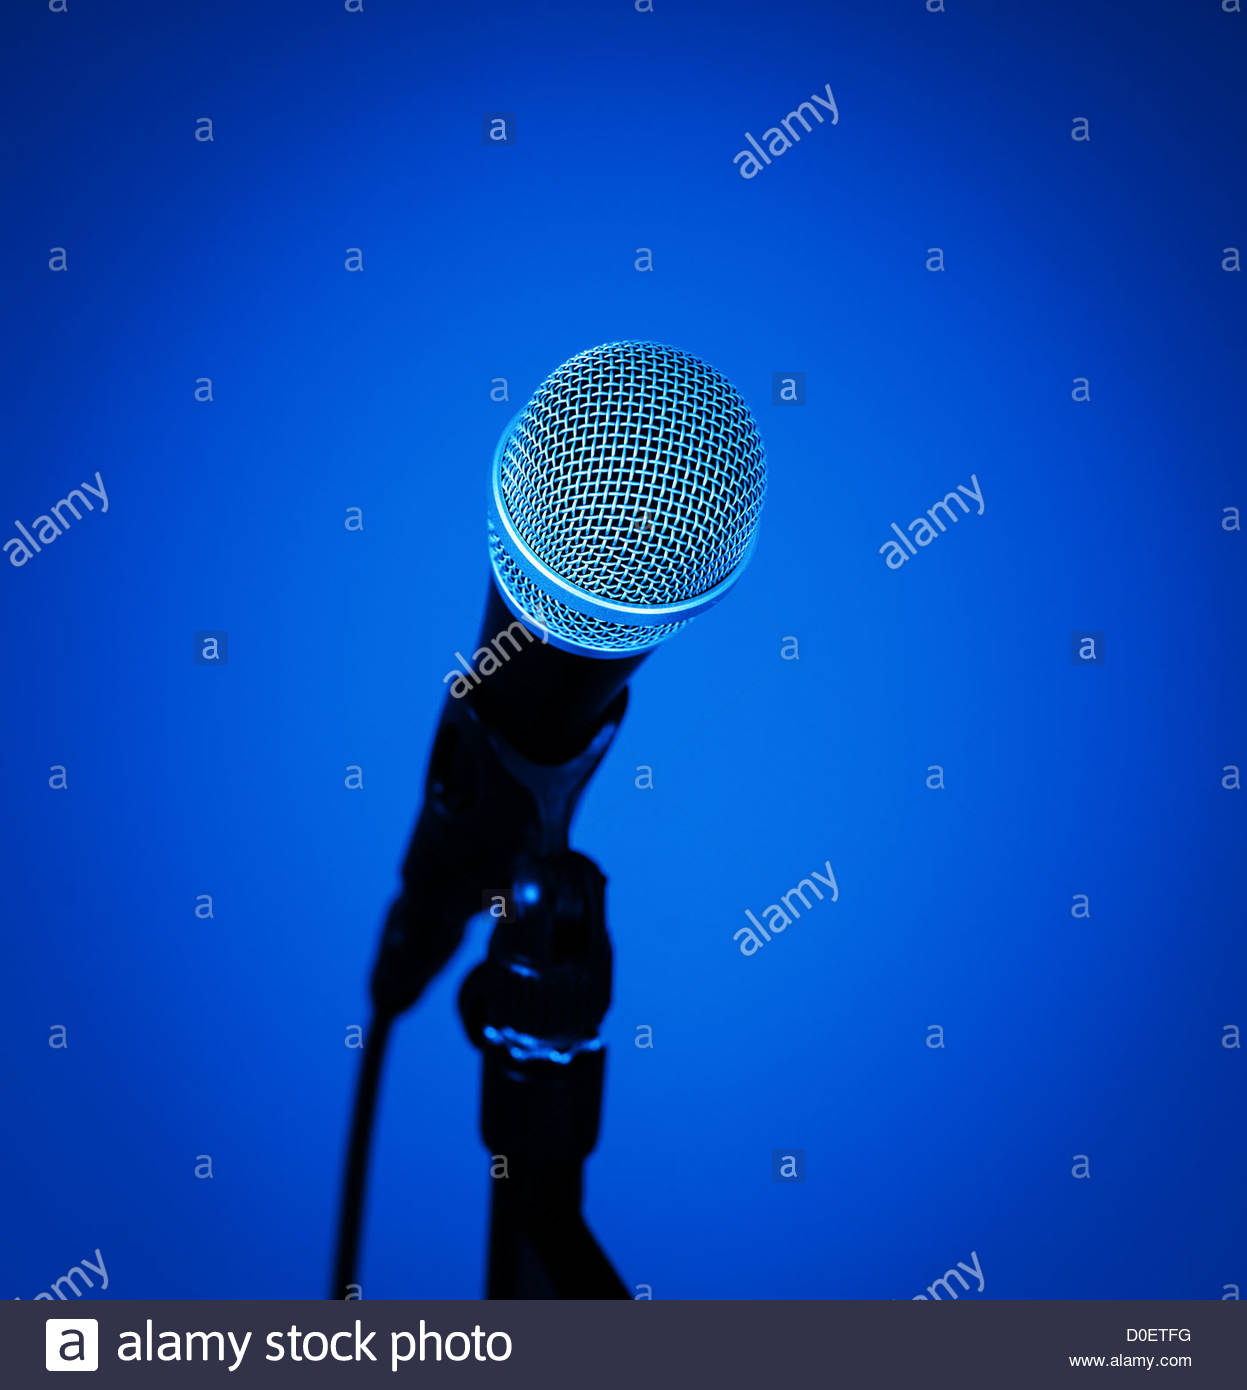 Microphone close up Photo Stock